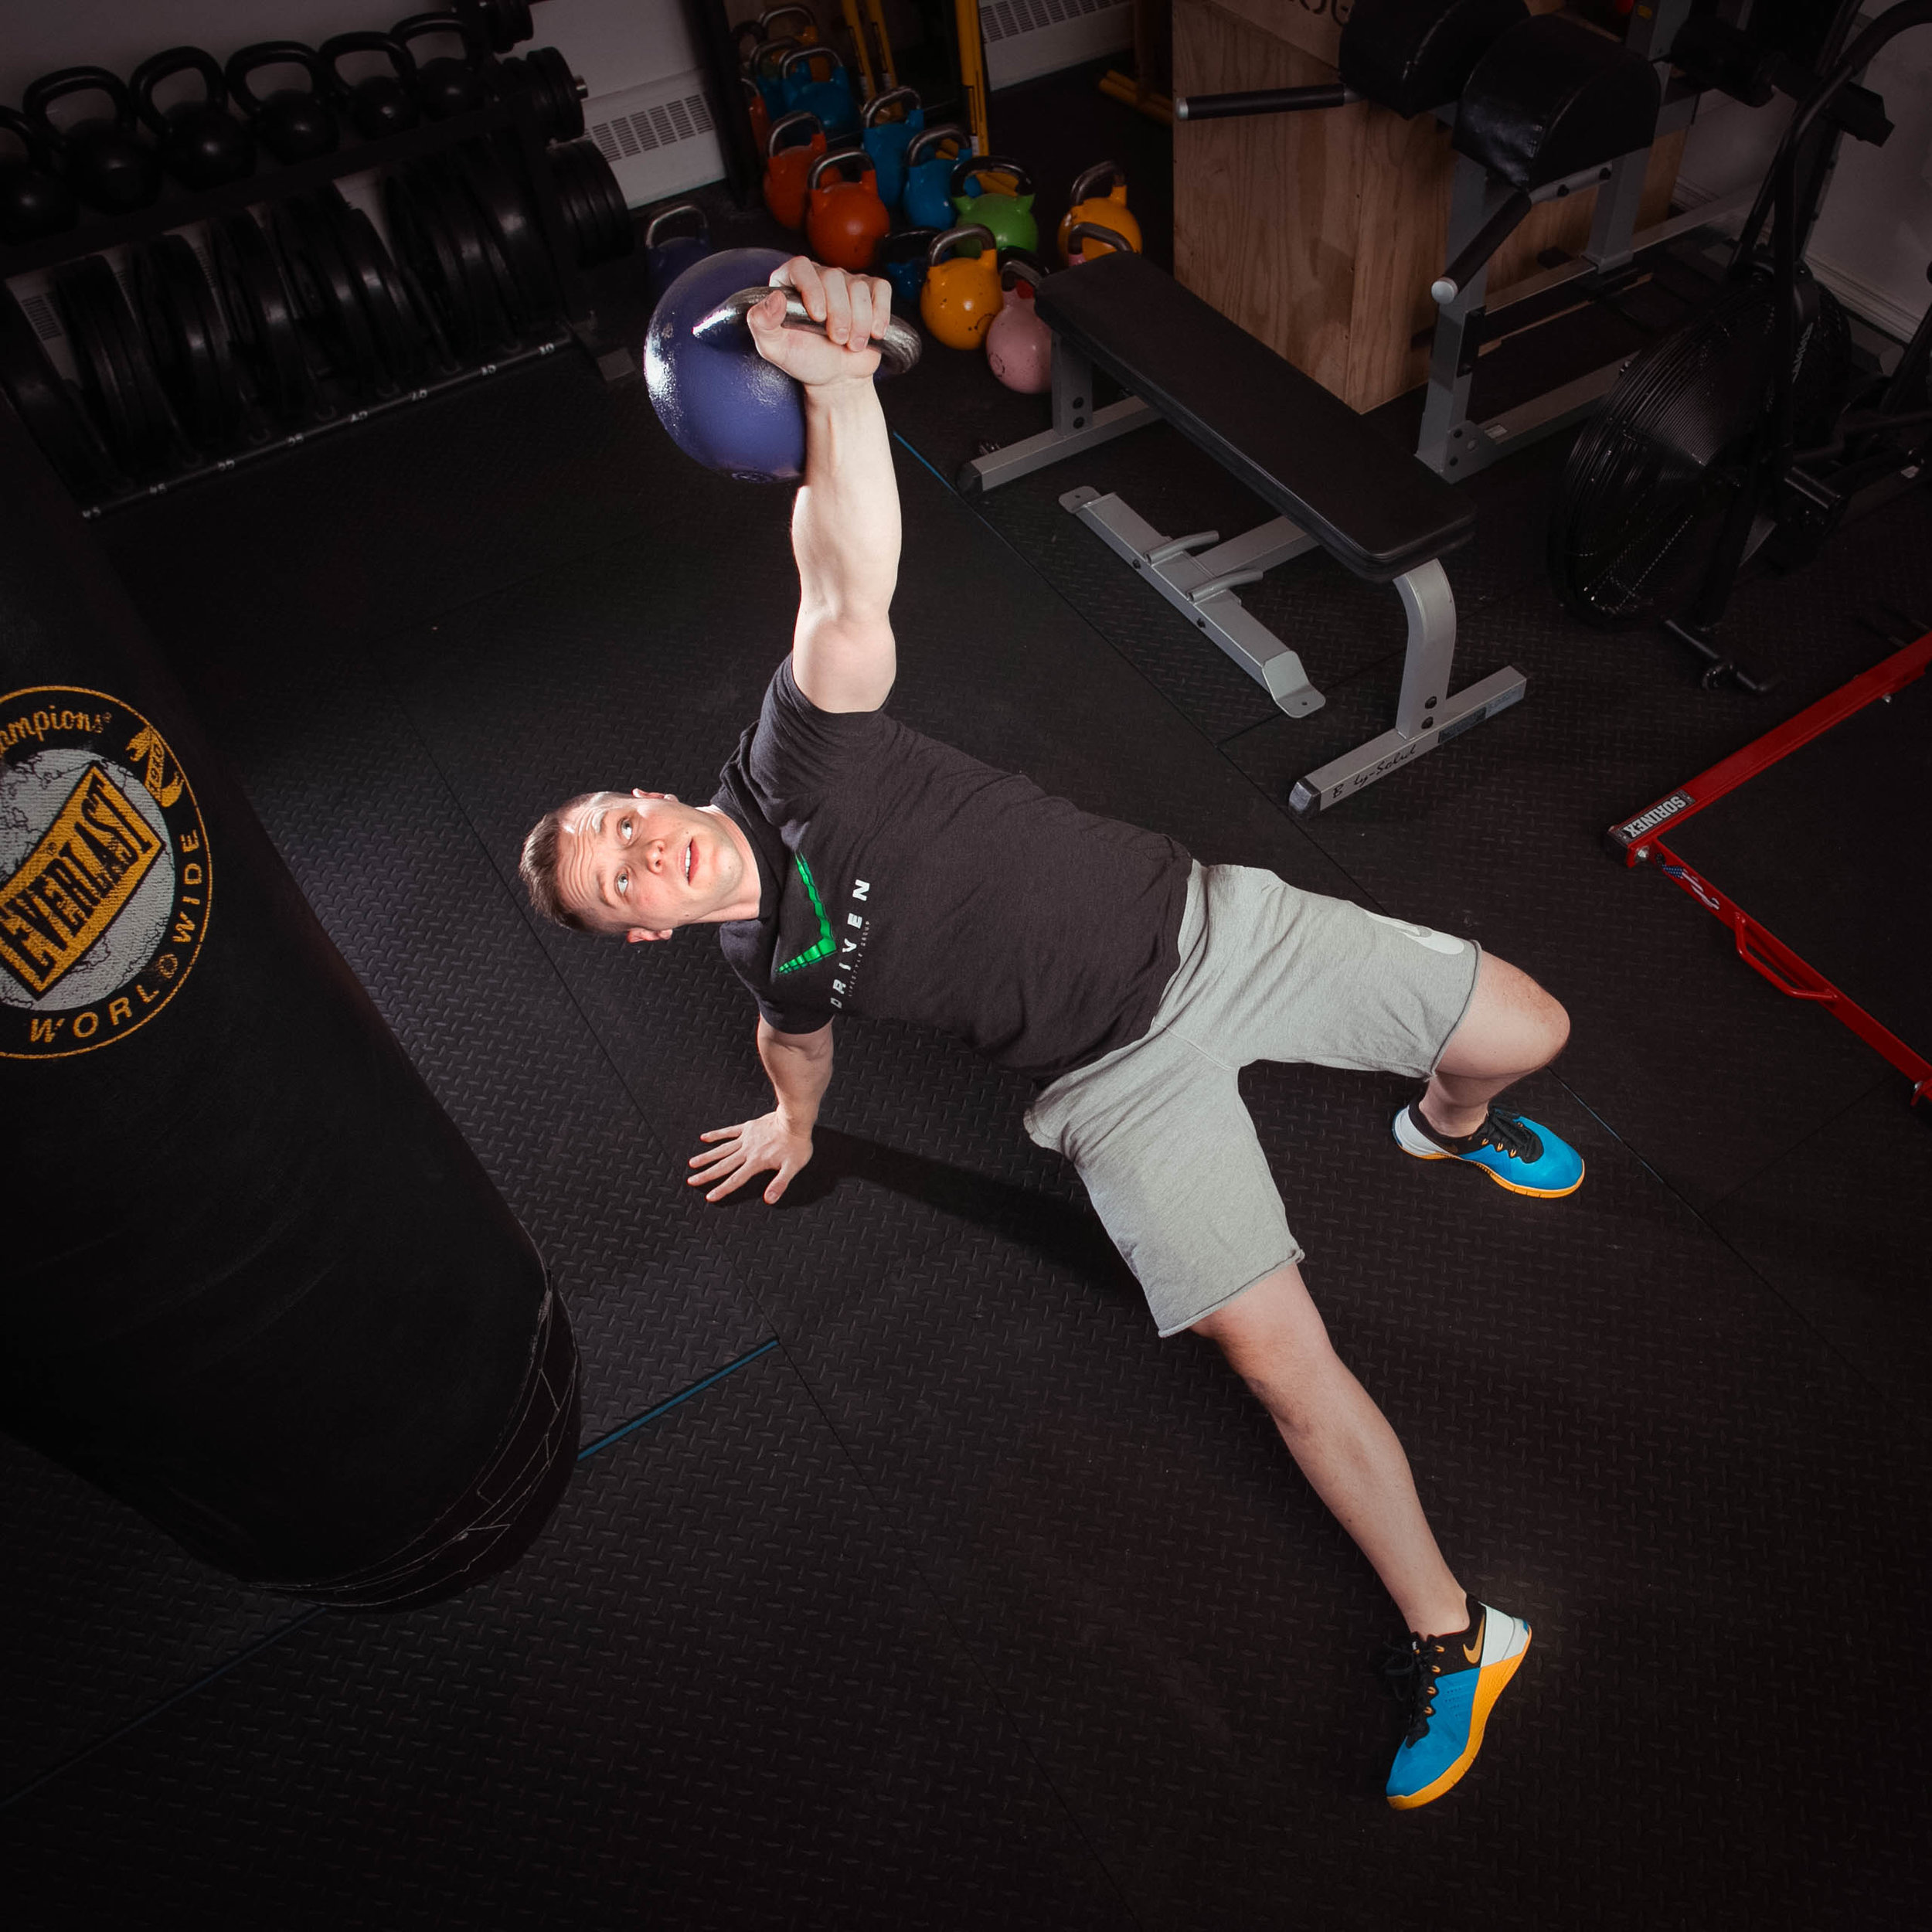 Dan Ince    I chose to be a trainer because it allows me to influence others in a way that changes their perspective of themselves both mentally and physically.  I focus on mixing every day lifestyle habits with physical and mental performance. I want to create an experience that's designed exactly for who you are and what transformations you want to see in yourself. Outside the studio, I play an active role in providing you lifestyle guidance that will help you discover your full potential.